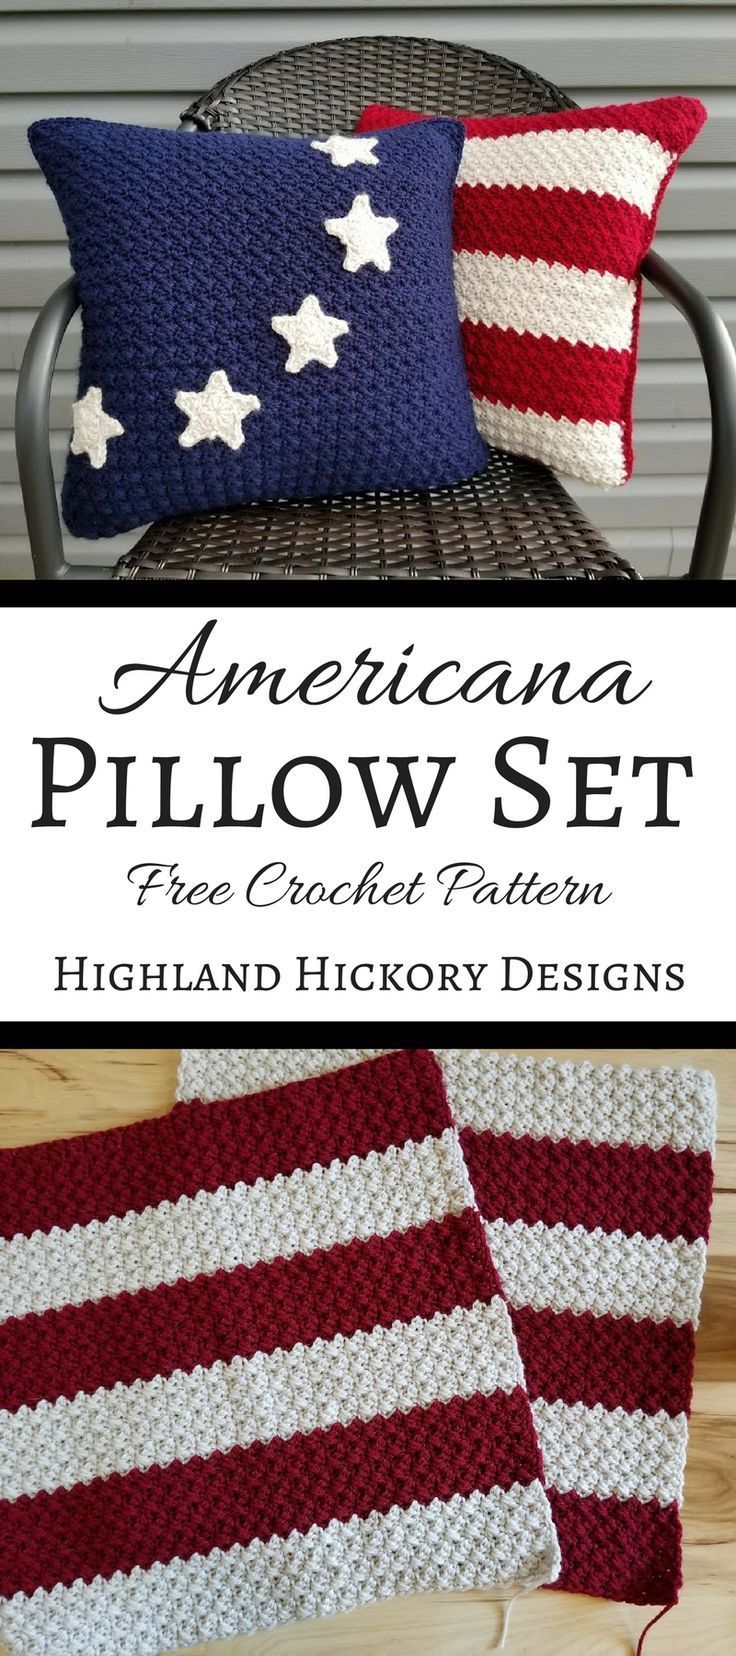 Americana Pillows | Ganchillo, Tejido y Arte